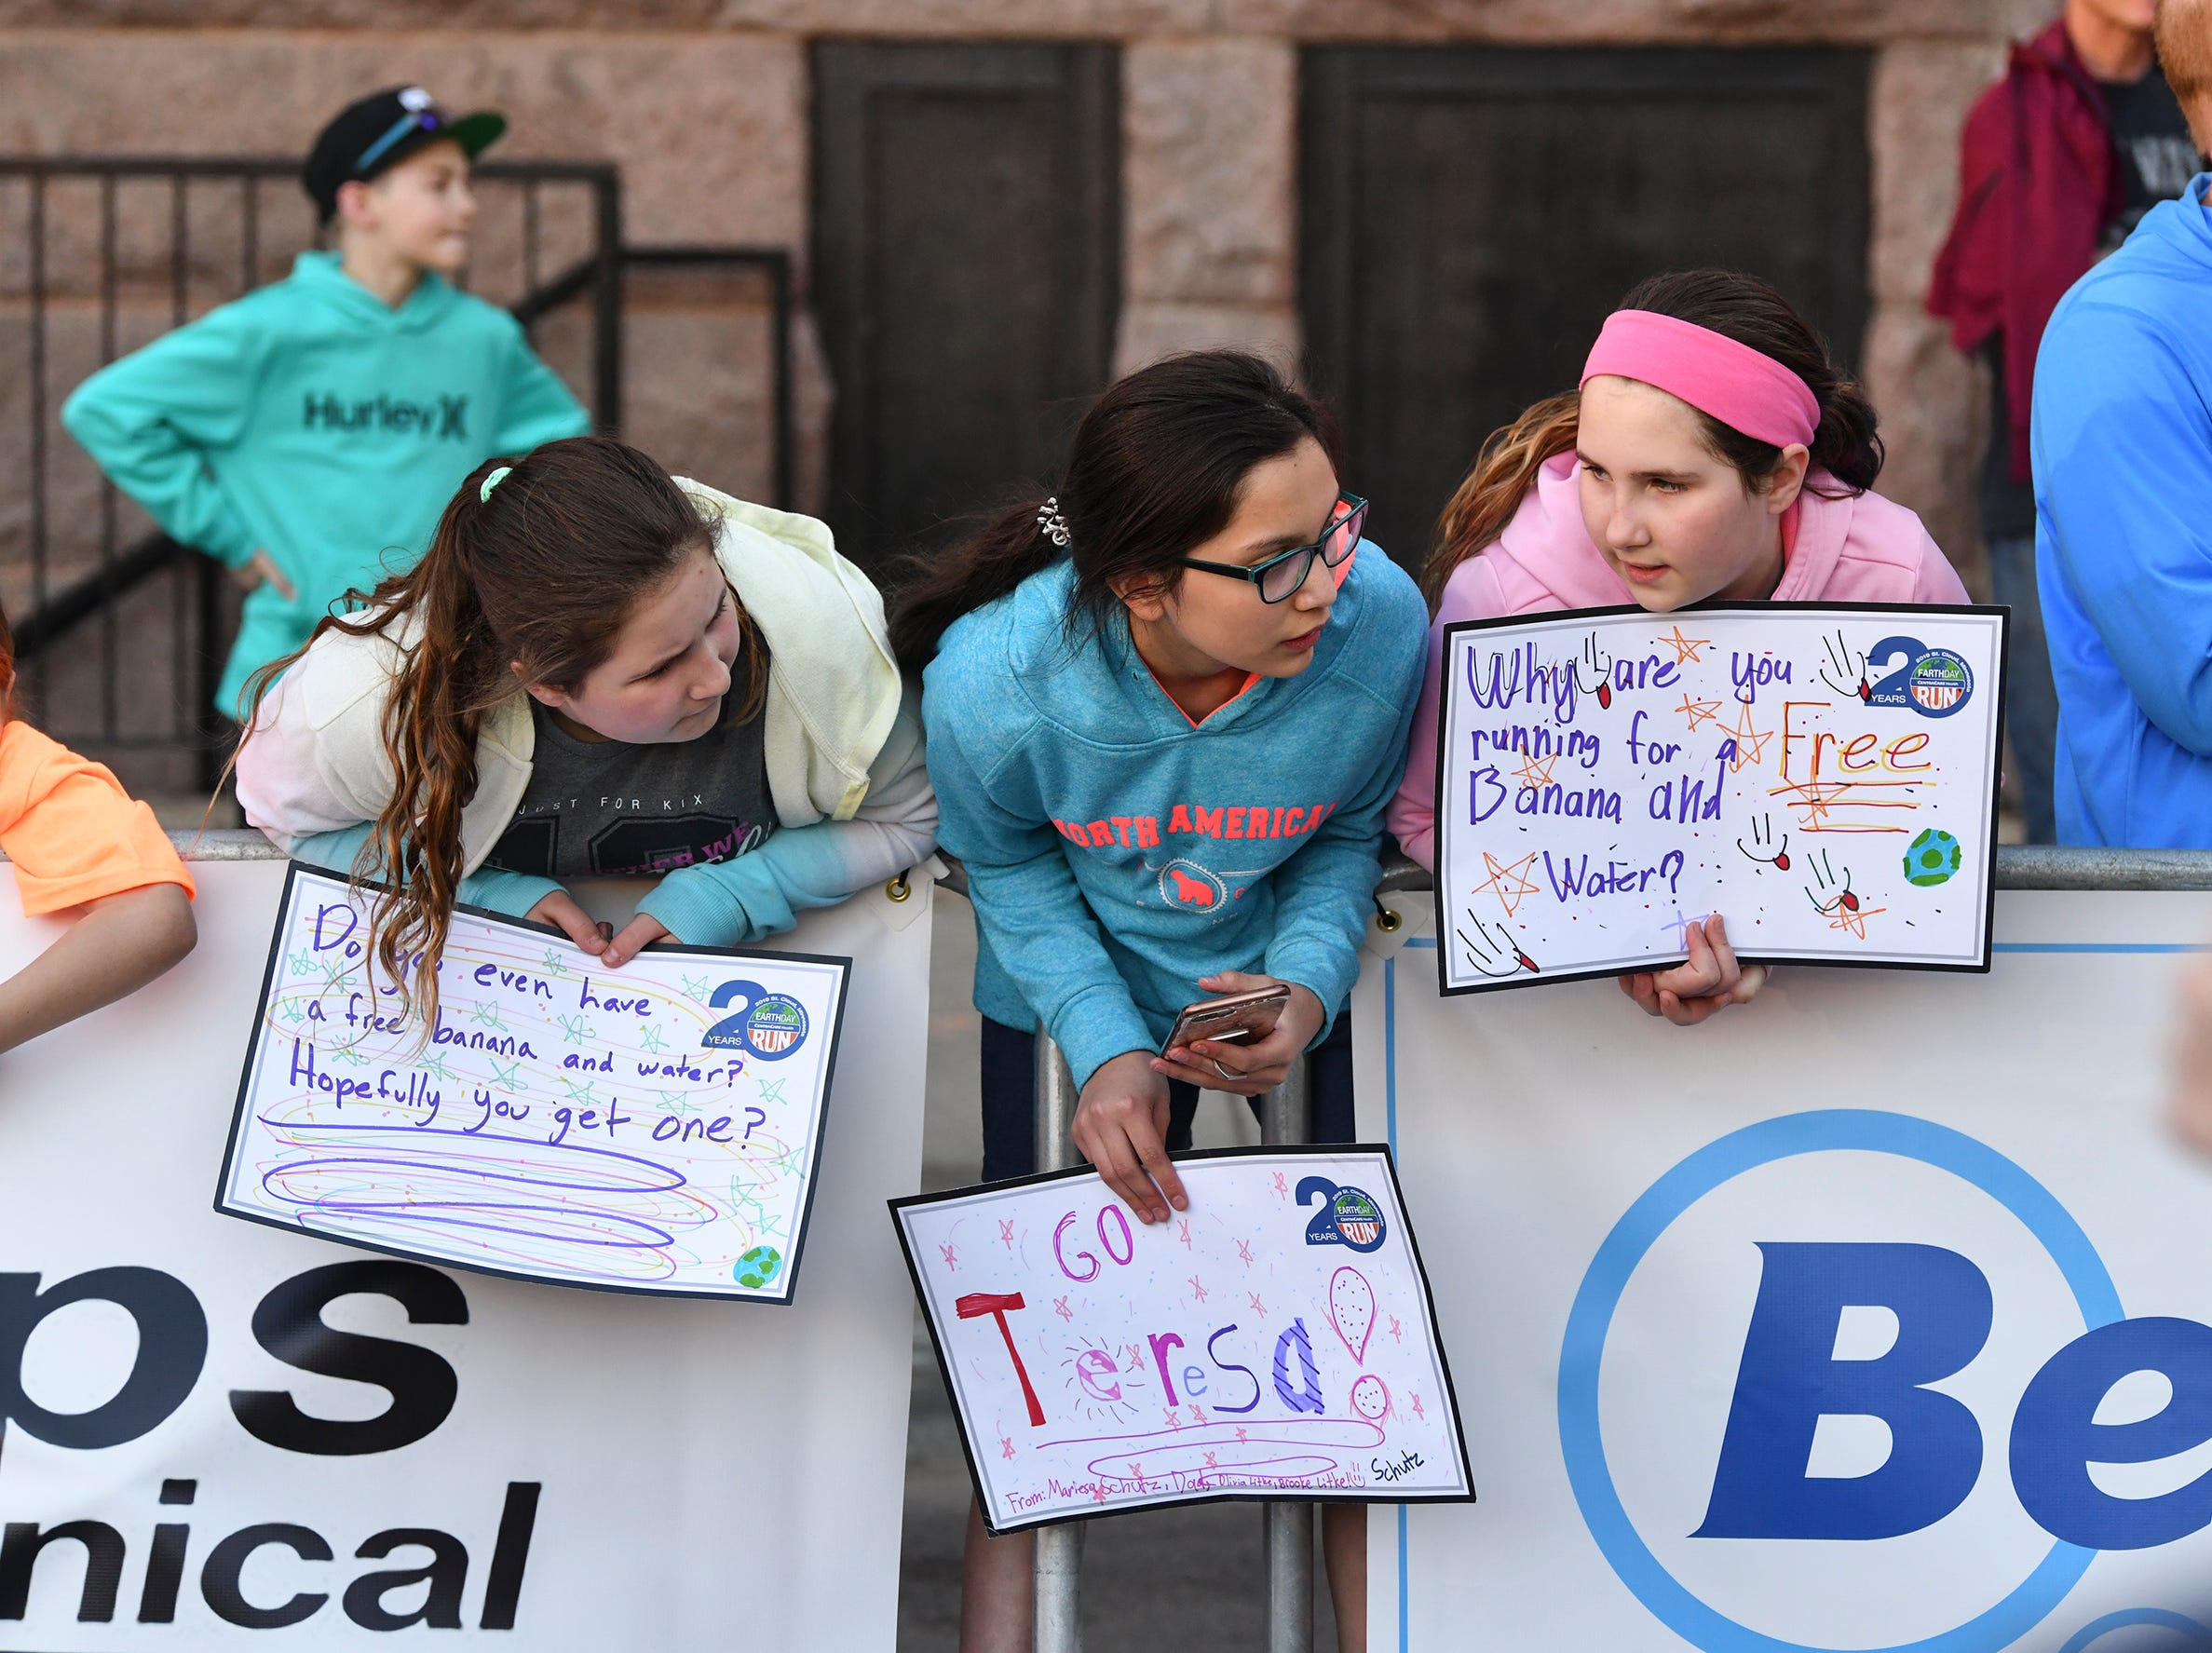 Runners are cheered on near the finish line of the St. Cloud Subaru 5K run/walk Friday in downtown St. Cloud.